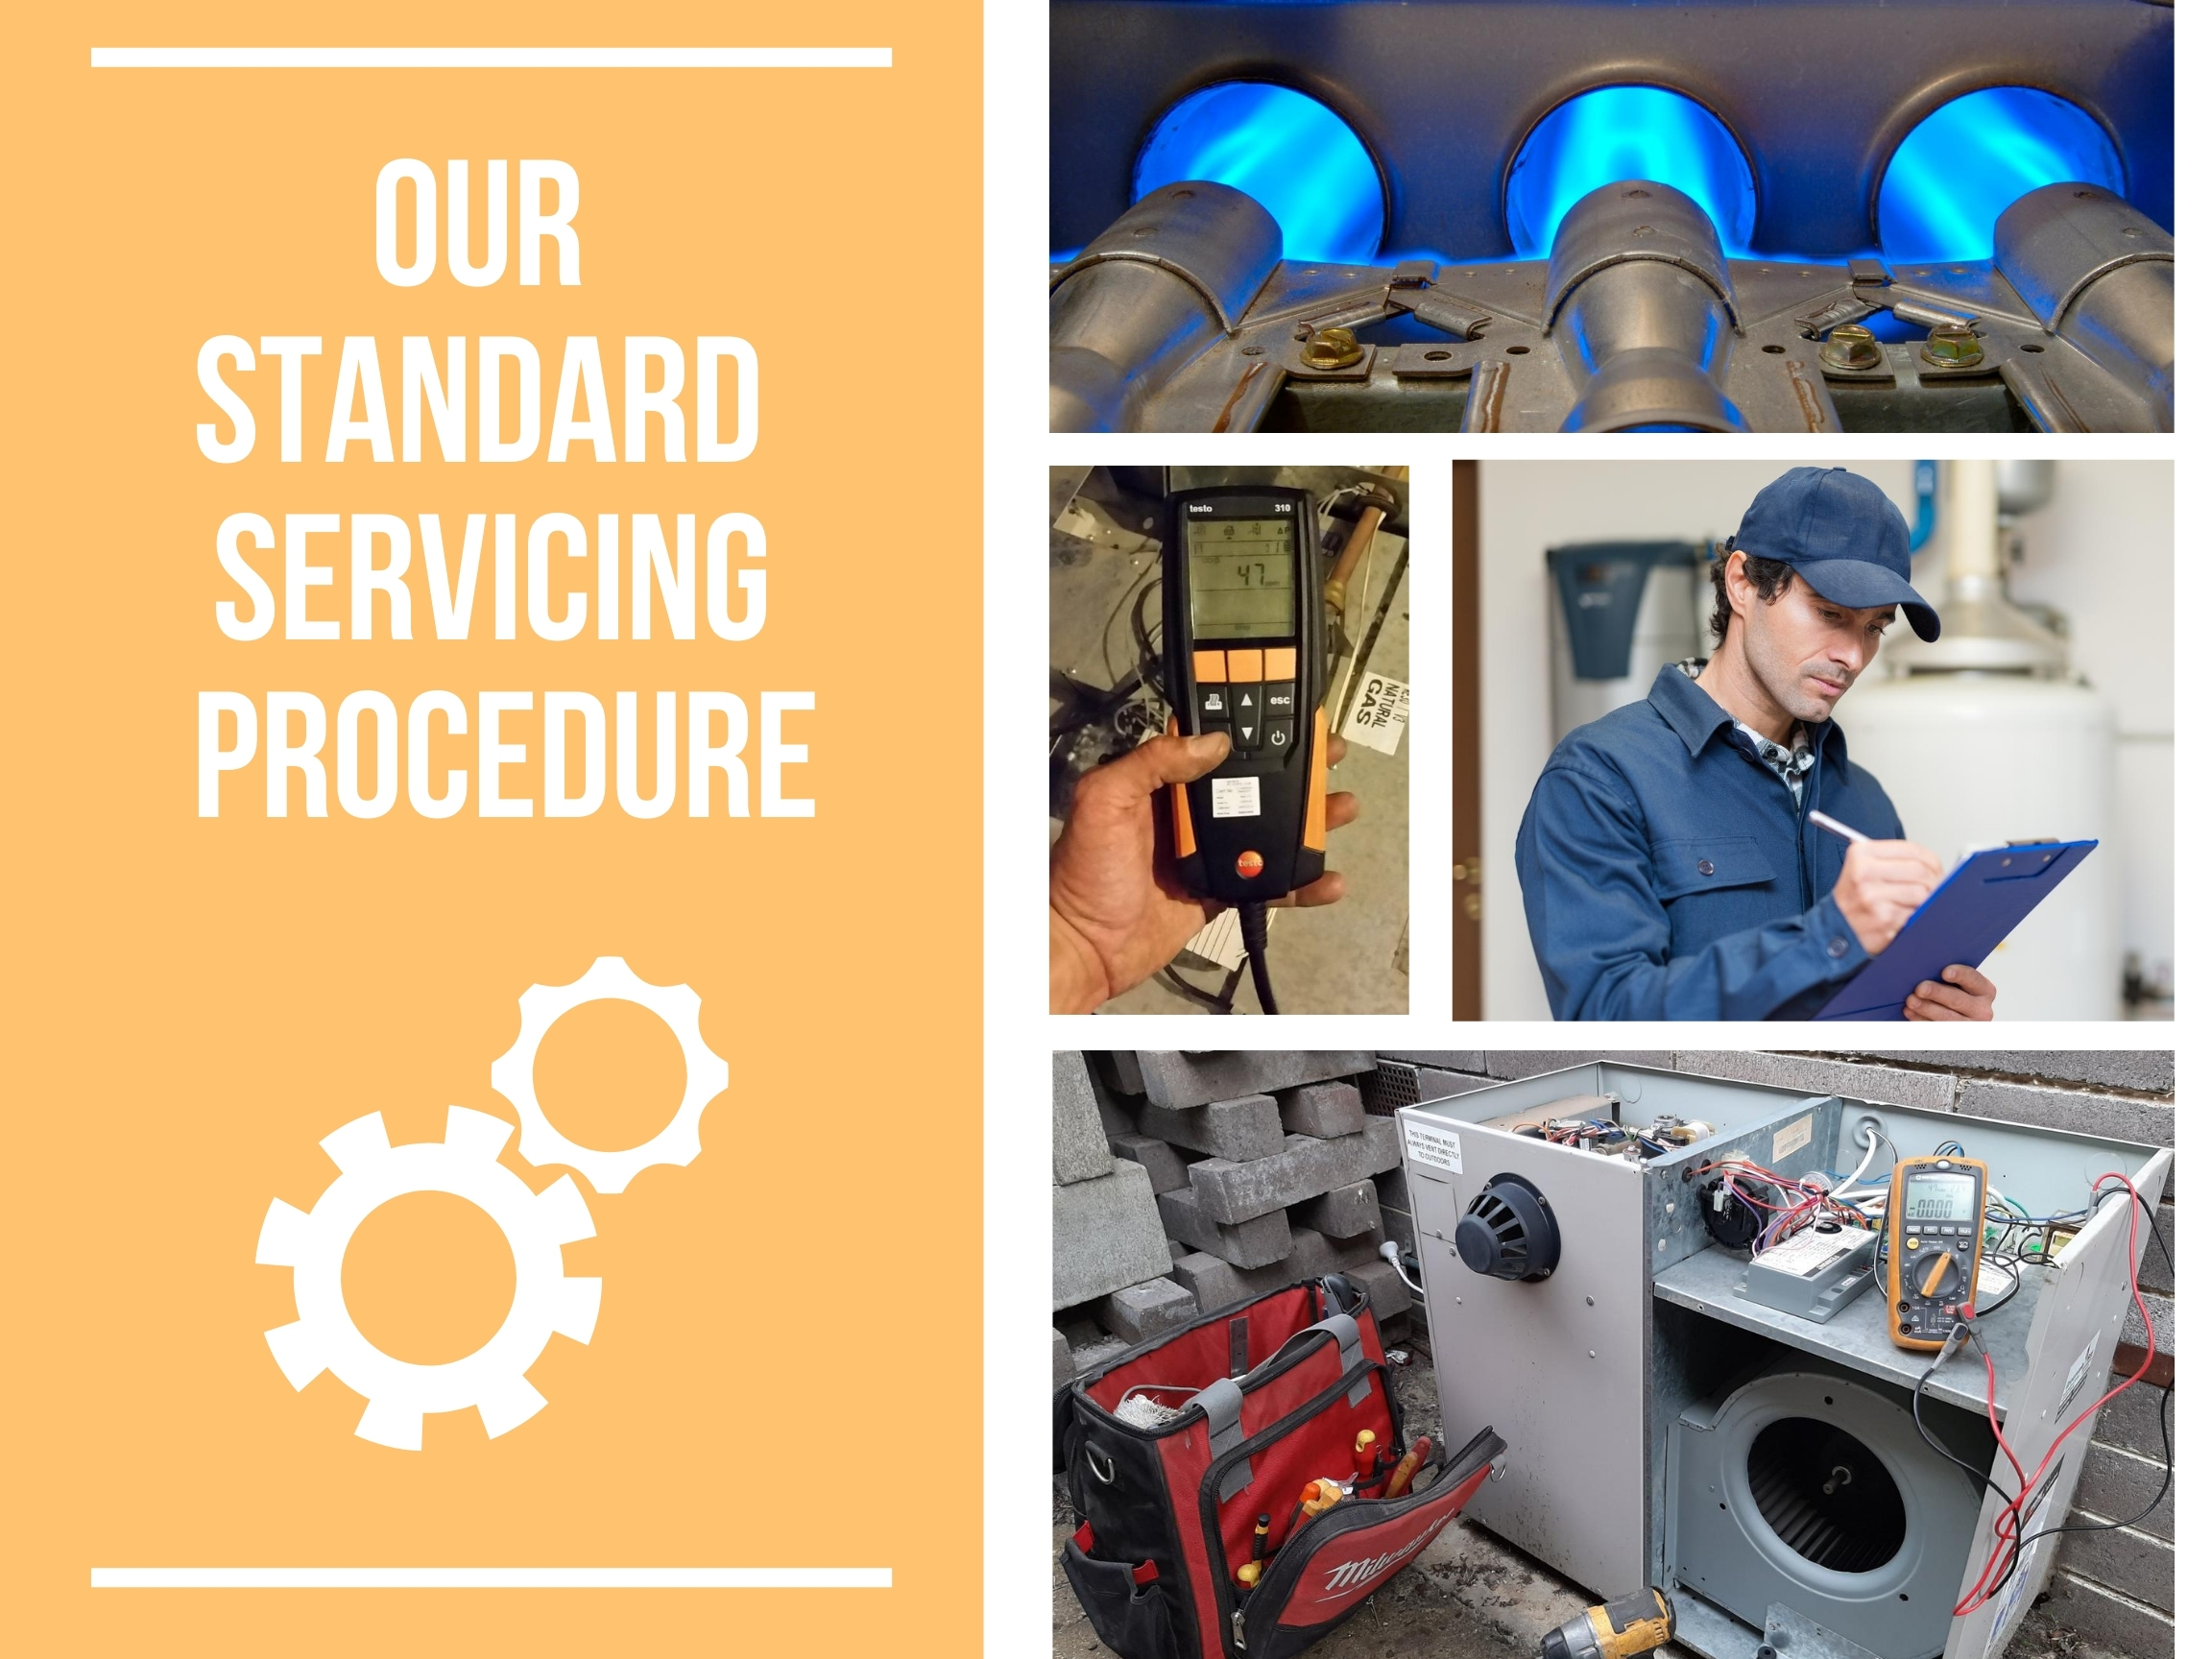 ALL ABOUT DUCTED HEATING SERVICING